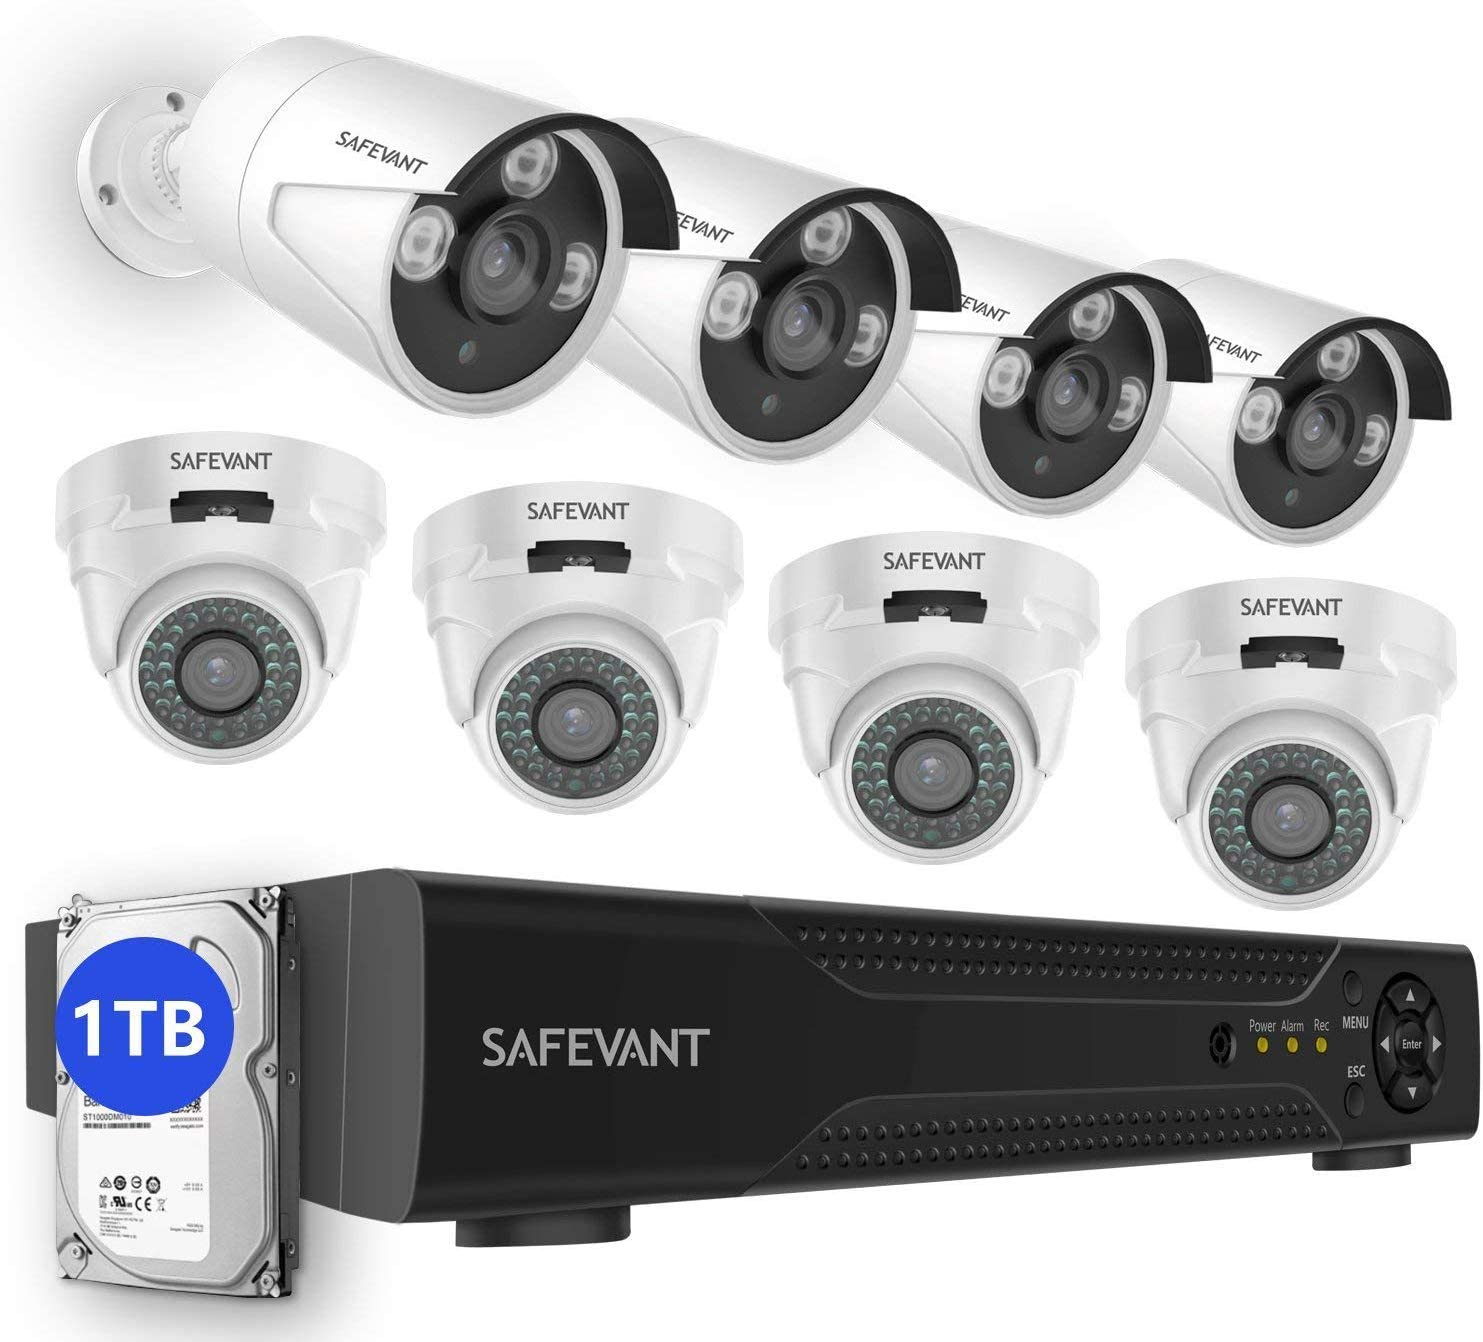 2020 New Security Camera System with 1TB Hard Drive,SAFEVANT 5-in-1 HD DVR Systems Indoor Outdoor Home CCTV Dome Bullet Cameras with Night Vision Motion Detection